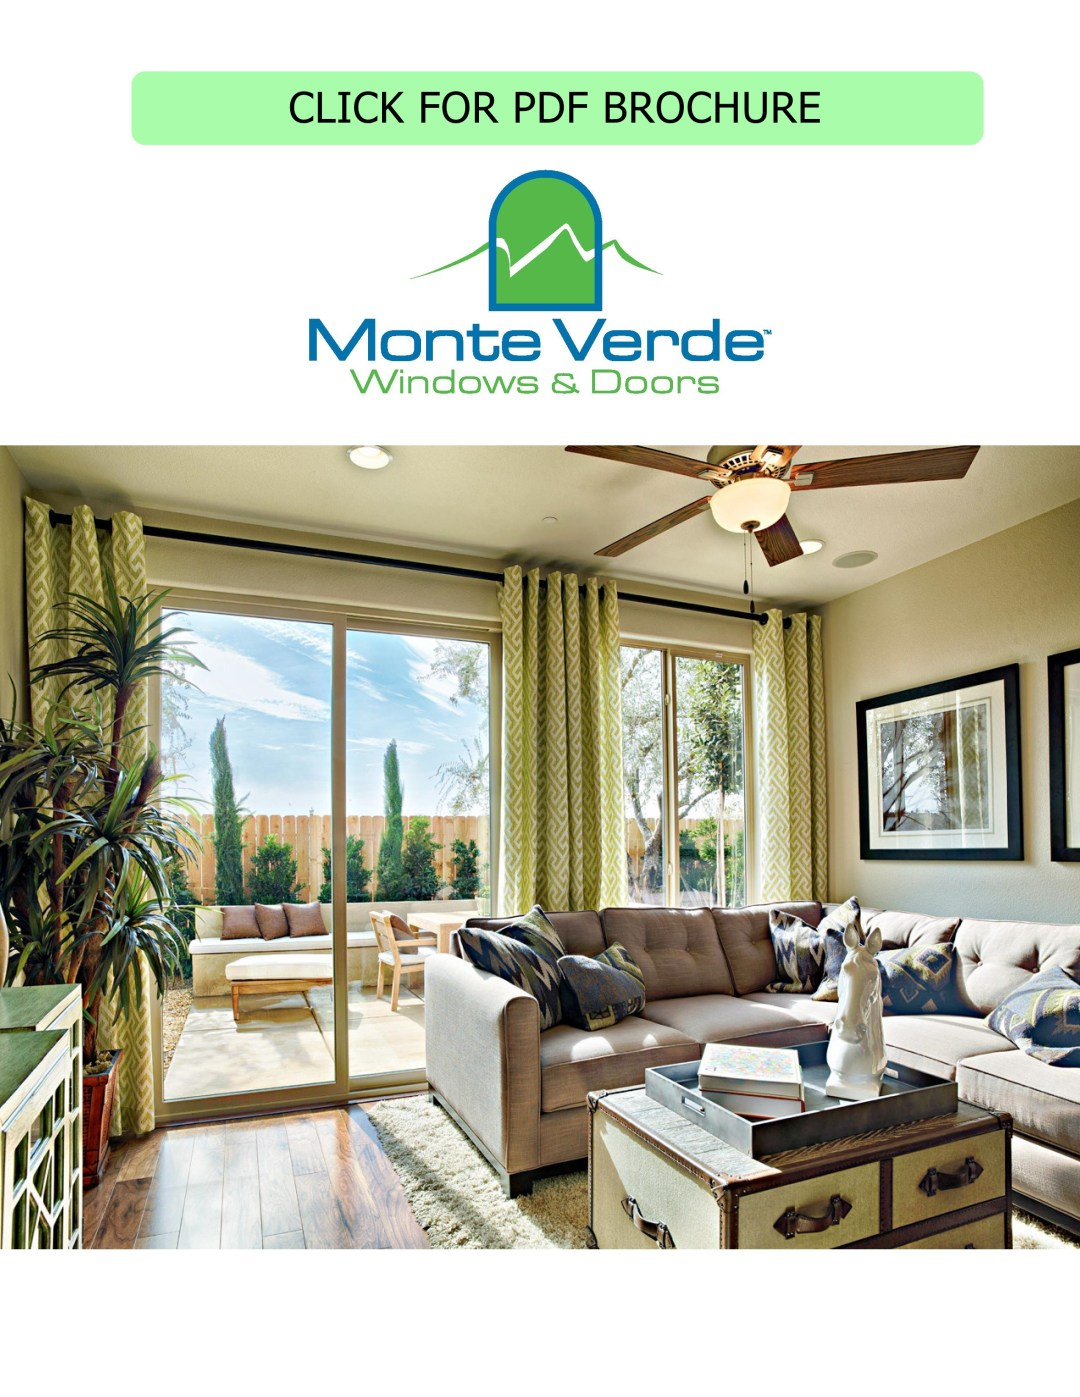 MONTE VERDE WINDOWS BY ANLIN REDLANDS CALIFORNIA